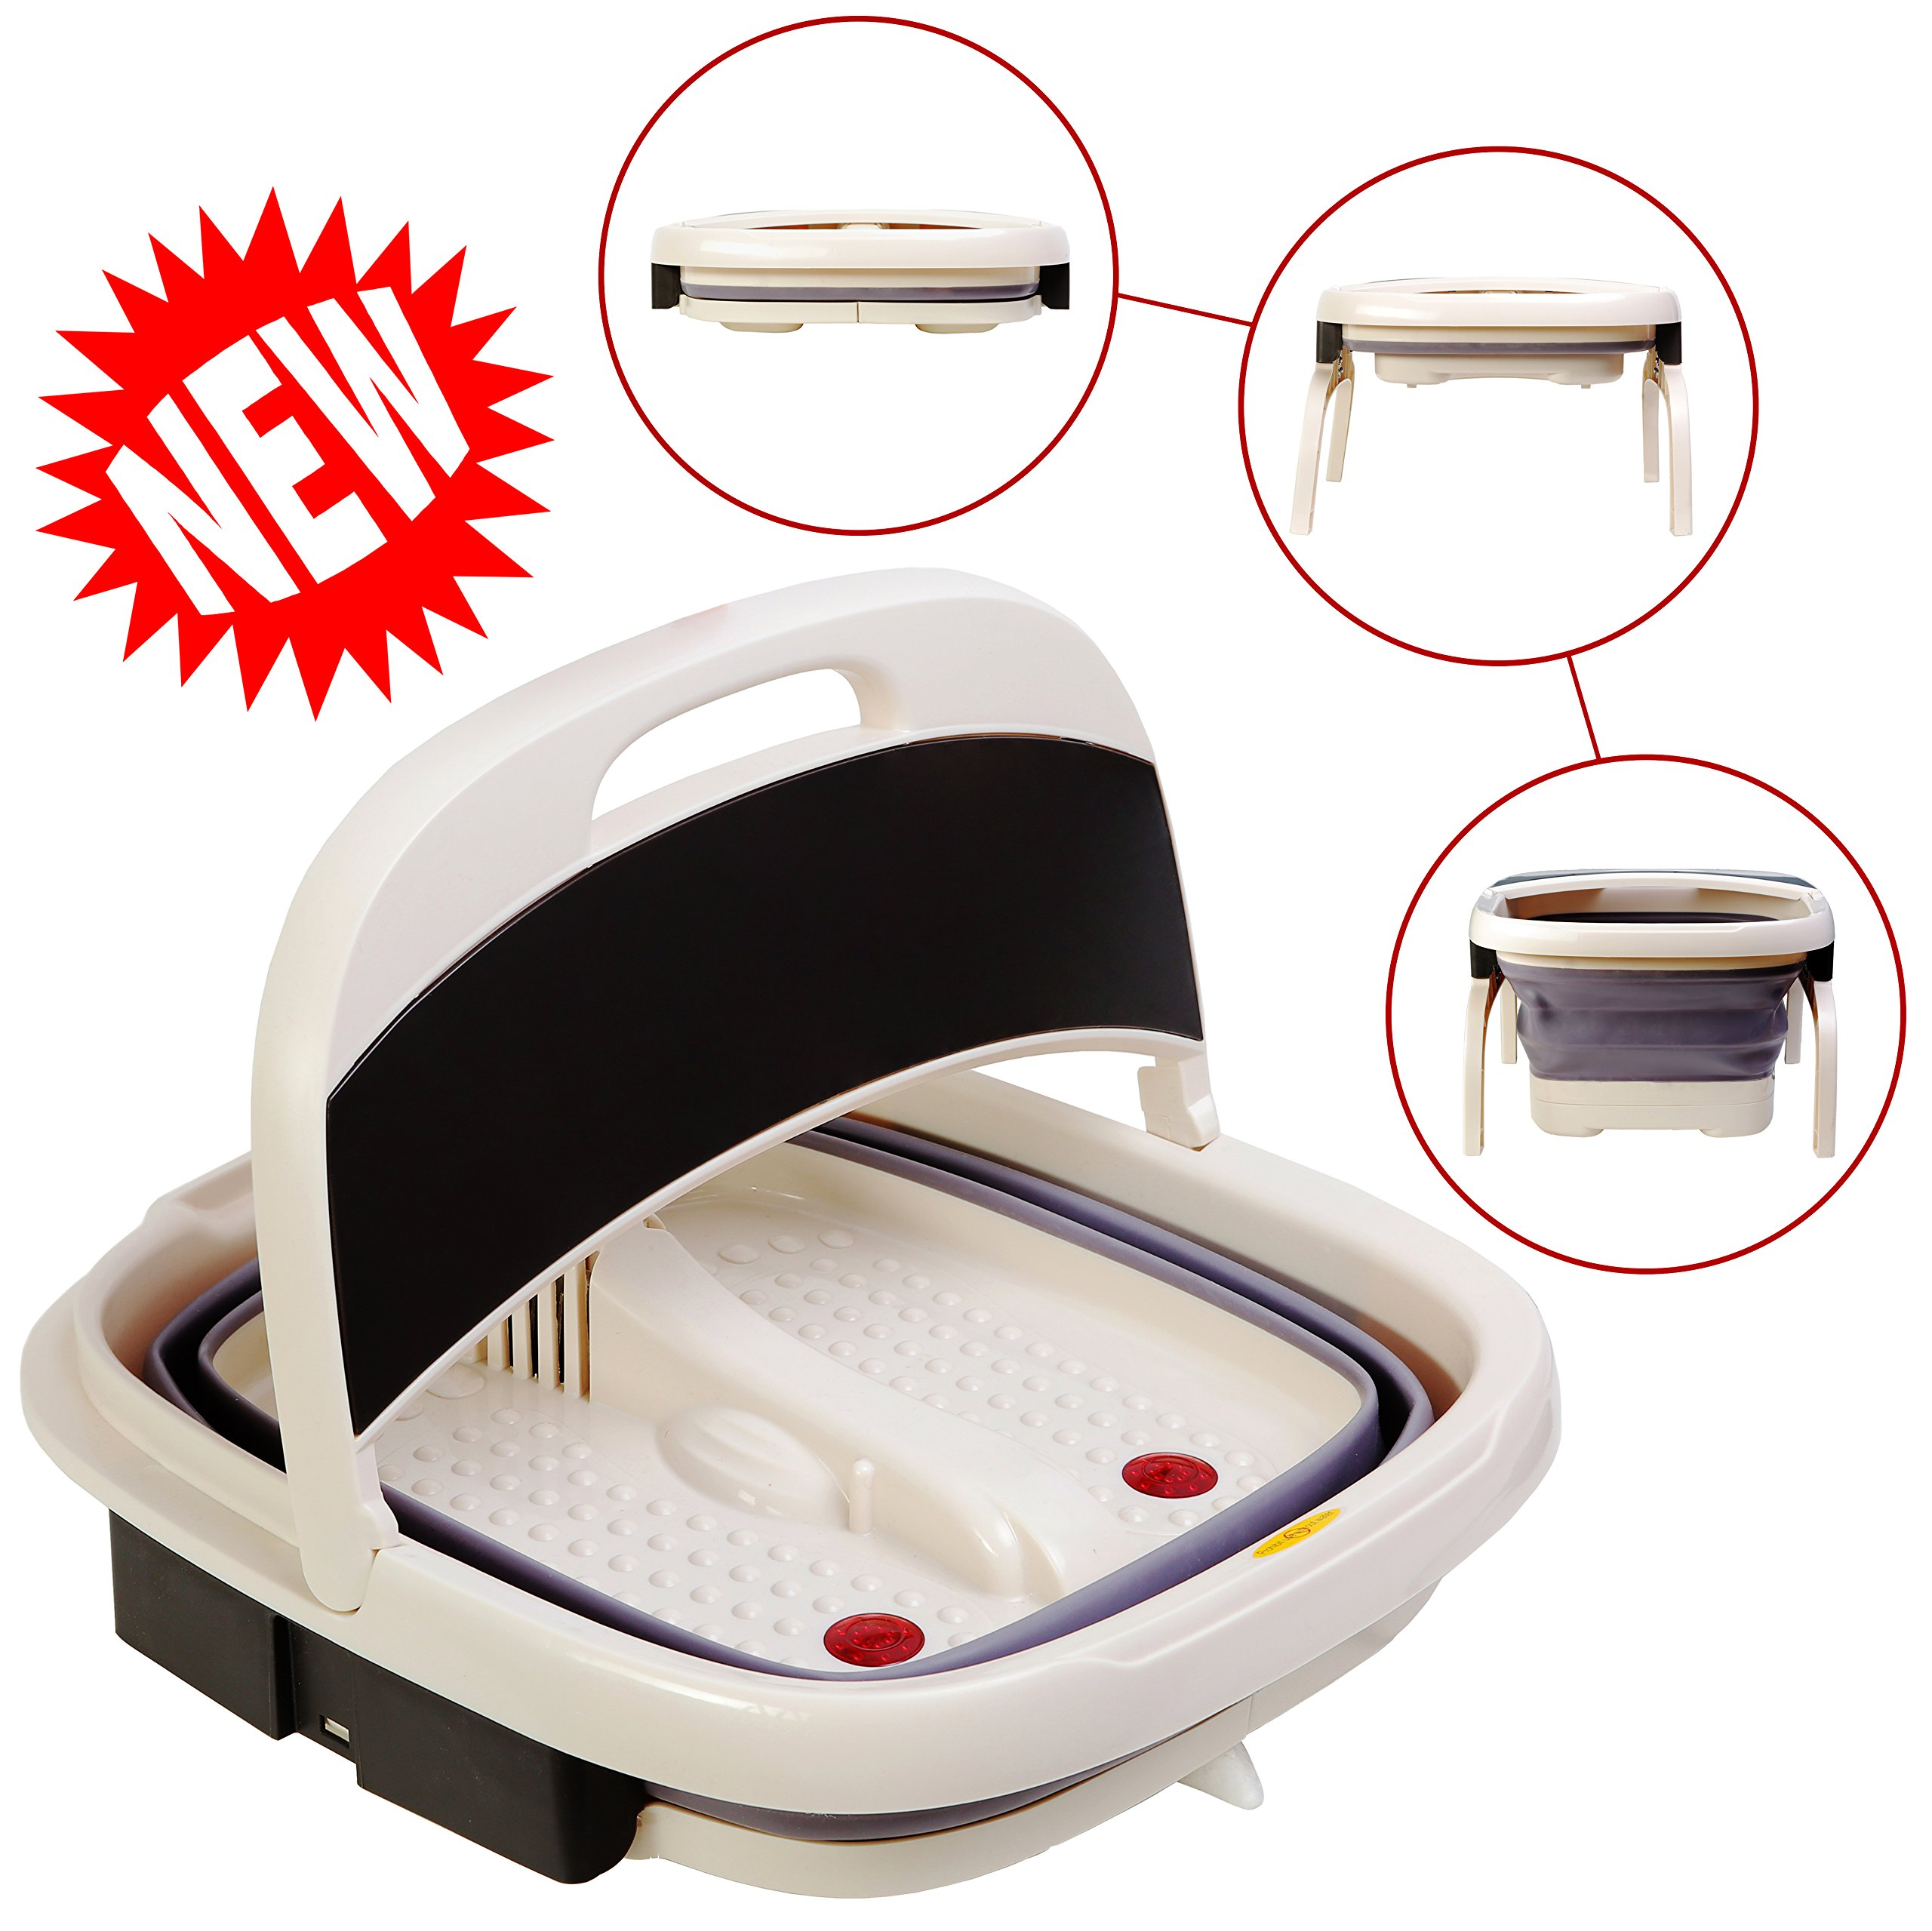 Foot Spa Massager – Portable Foot Bath Tub NEW 2018 VERSION w/Electric Heating & Bubble Wave – All in One Pedicure Machine Set For Relaxation & Red Light Therapy – Collapsible Design For Easy Storage